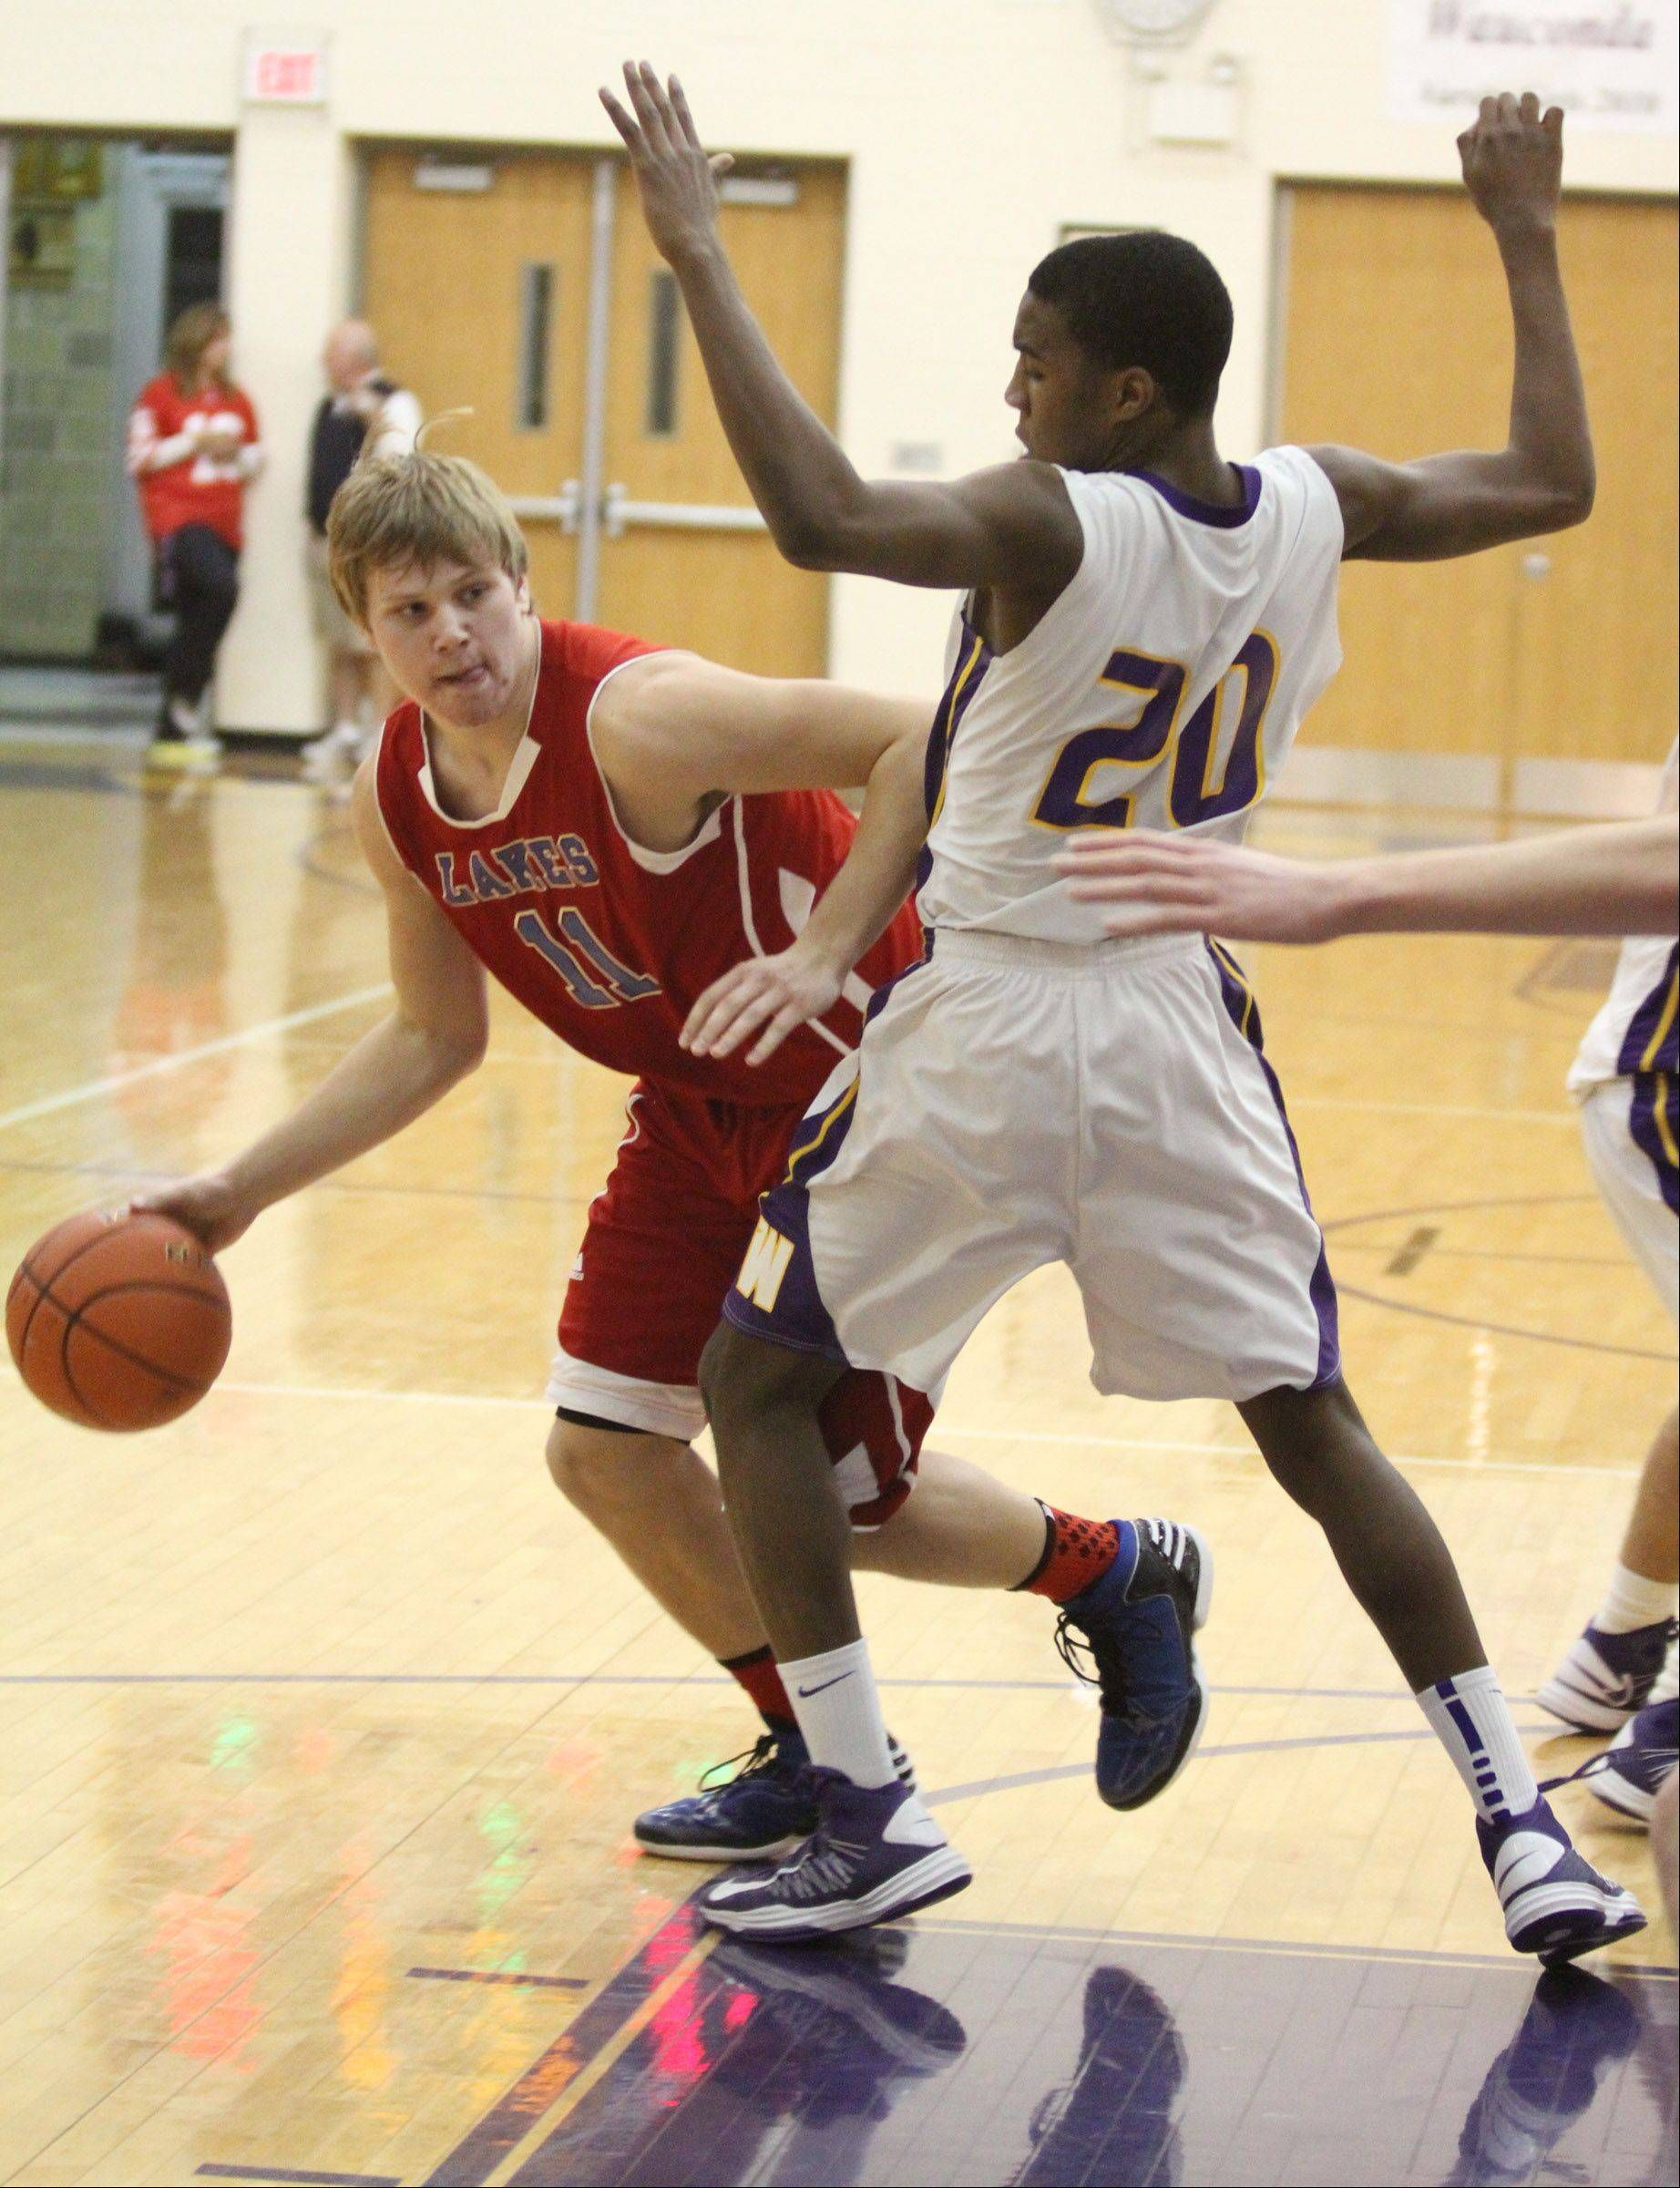 Images from the Lakes at Wauconda boys basketball game on Friday, Jan 18 in Wauconda.